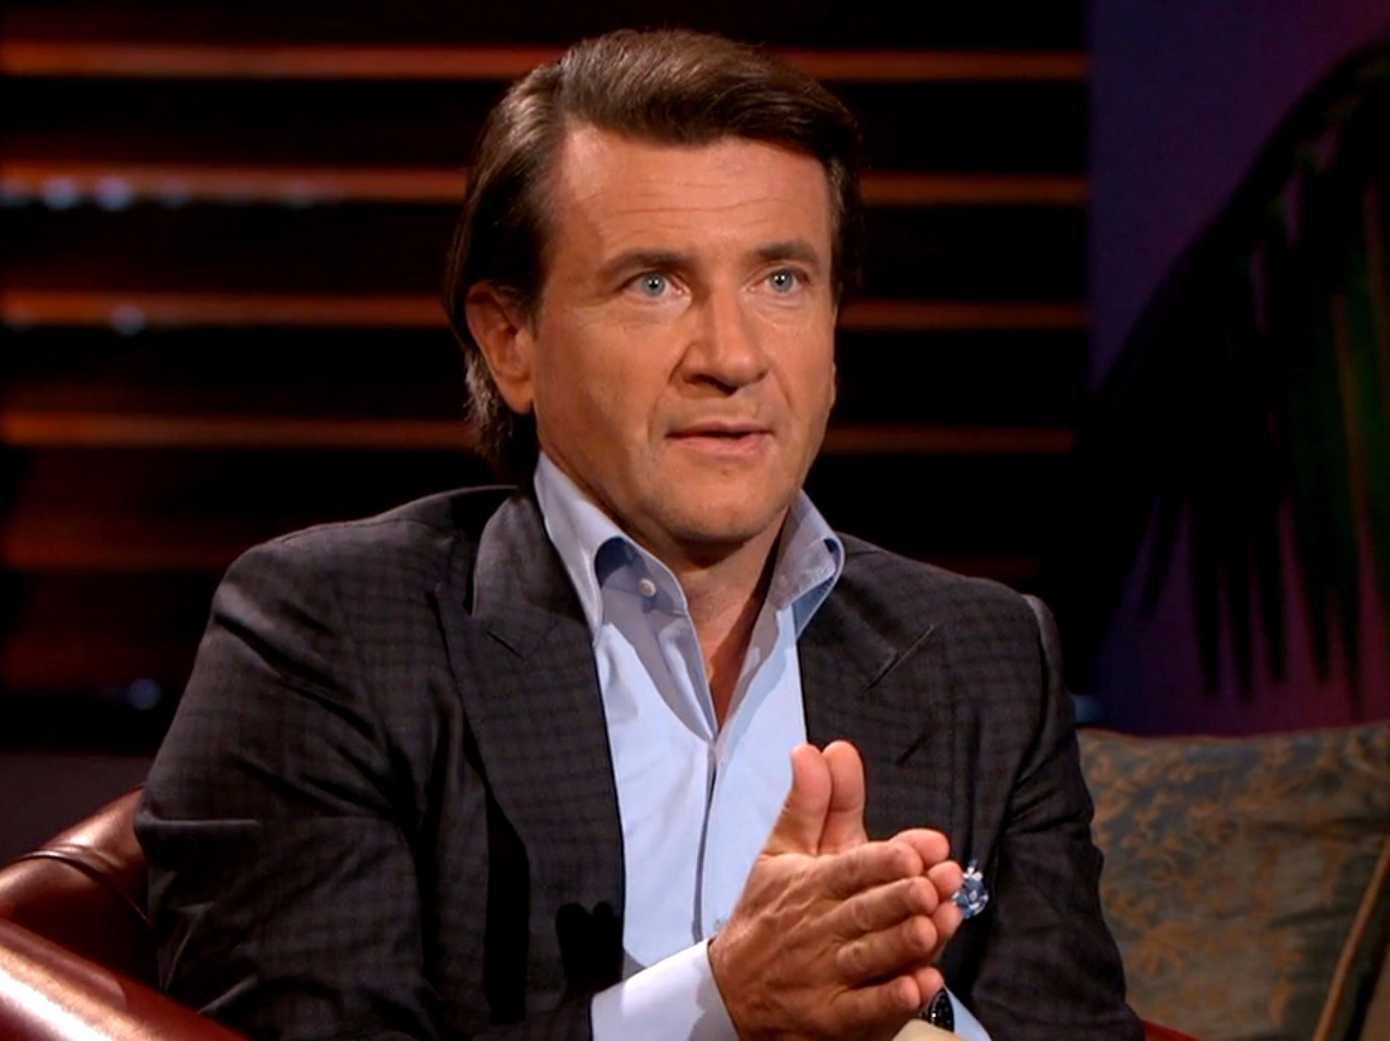 Robert Herjavec holds his hands together and leans forward in his chair on Shark Tank